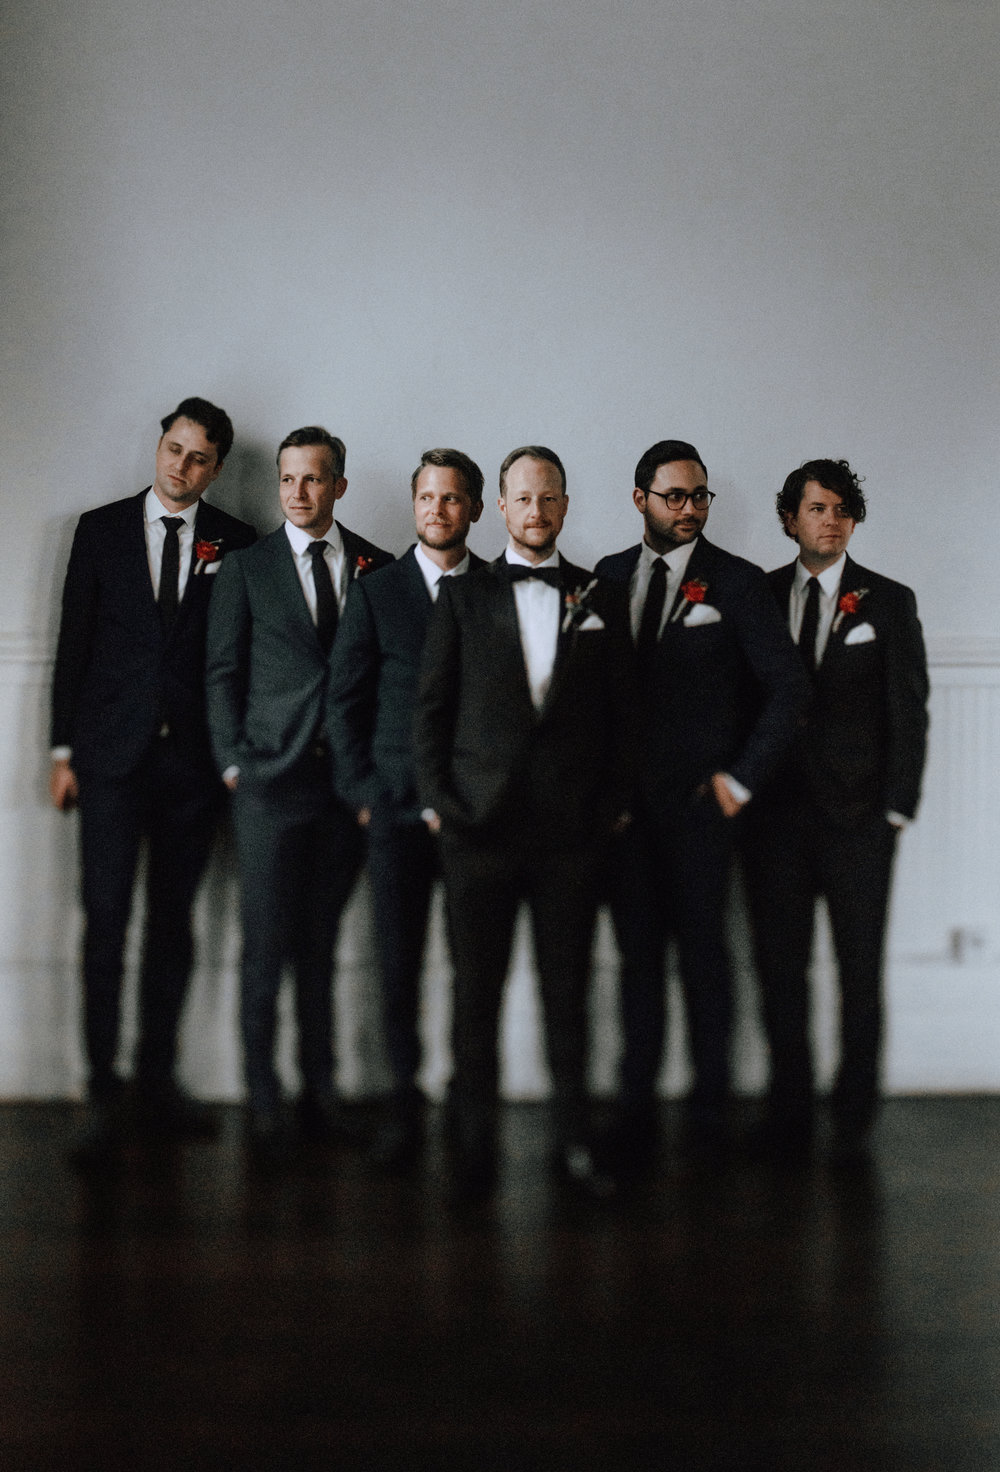 Jeff & His Groomsmen